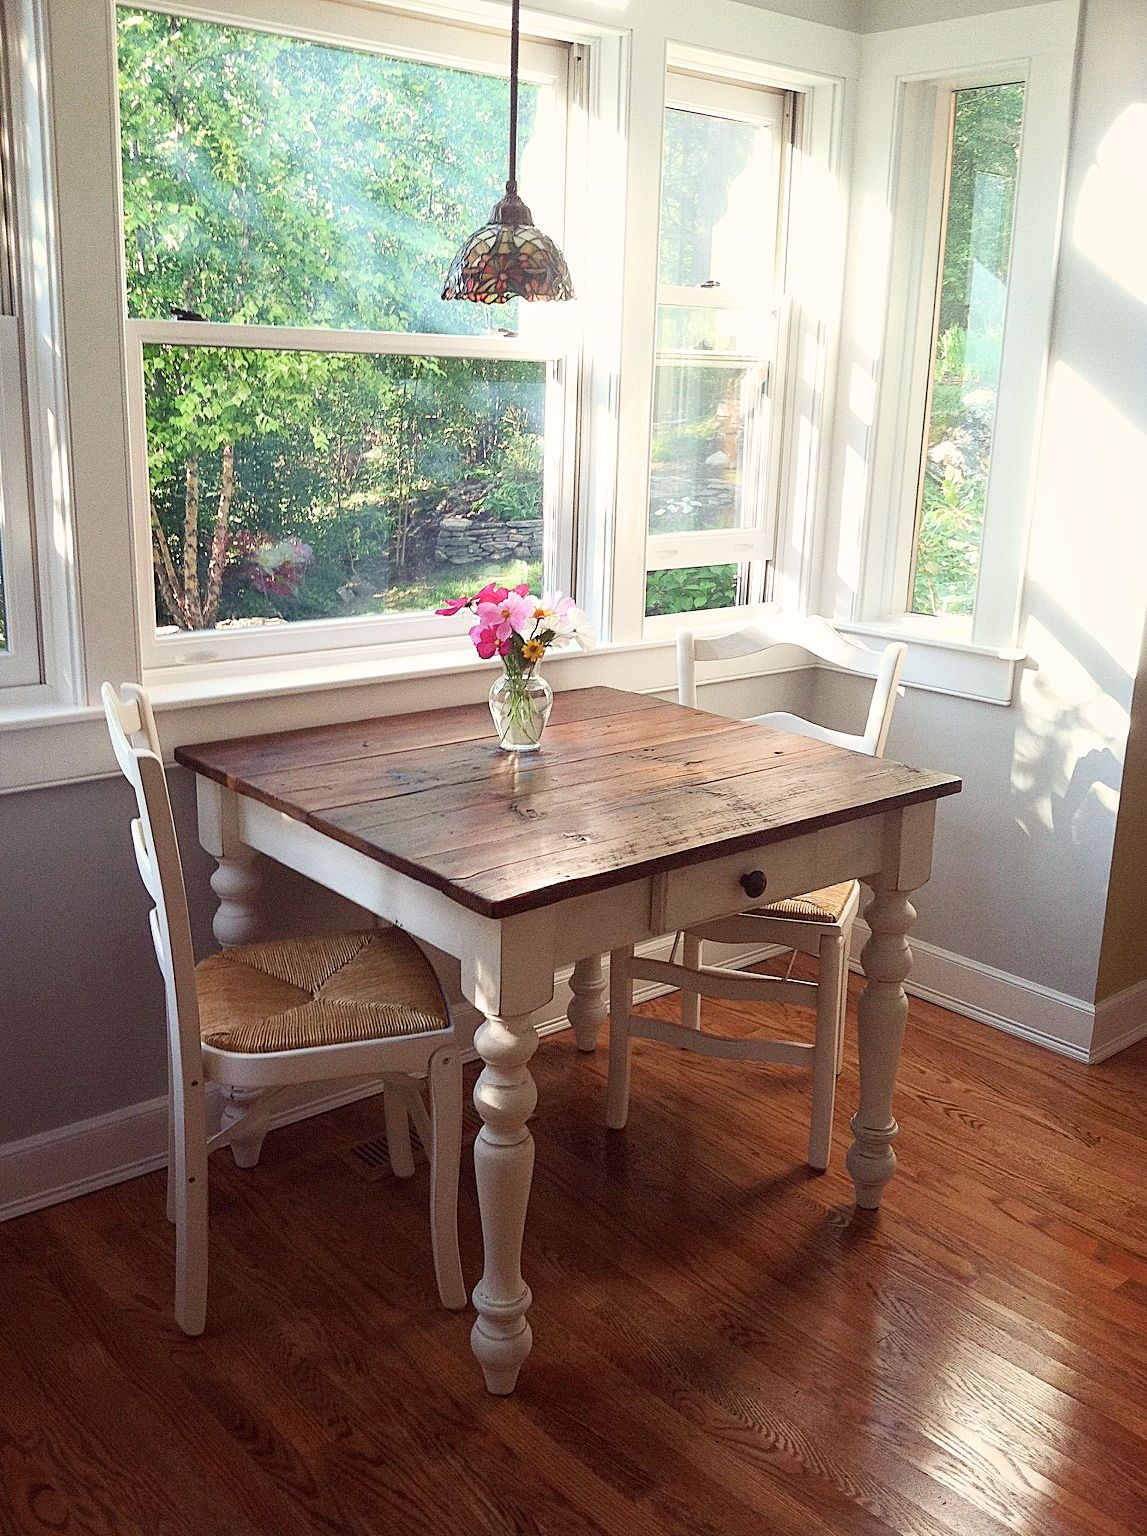 The perfect breakfast nook petite farm table! Made with a